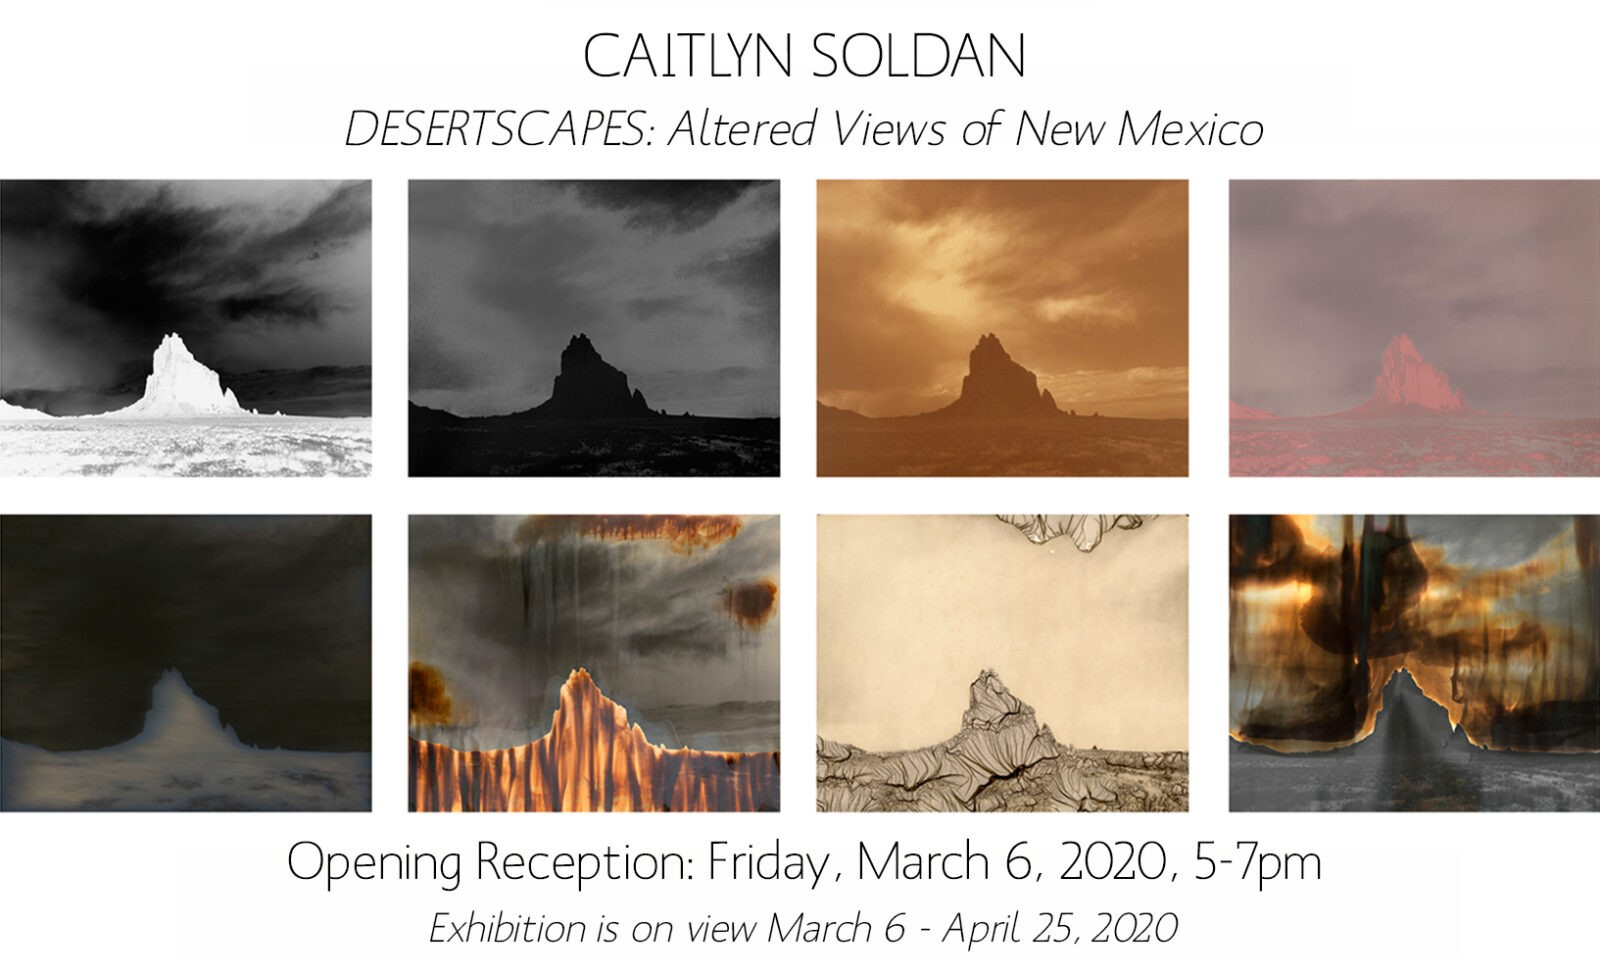 caitlyn soldan's desertscapes, altered views of new mexico